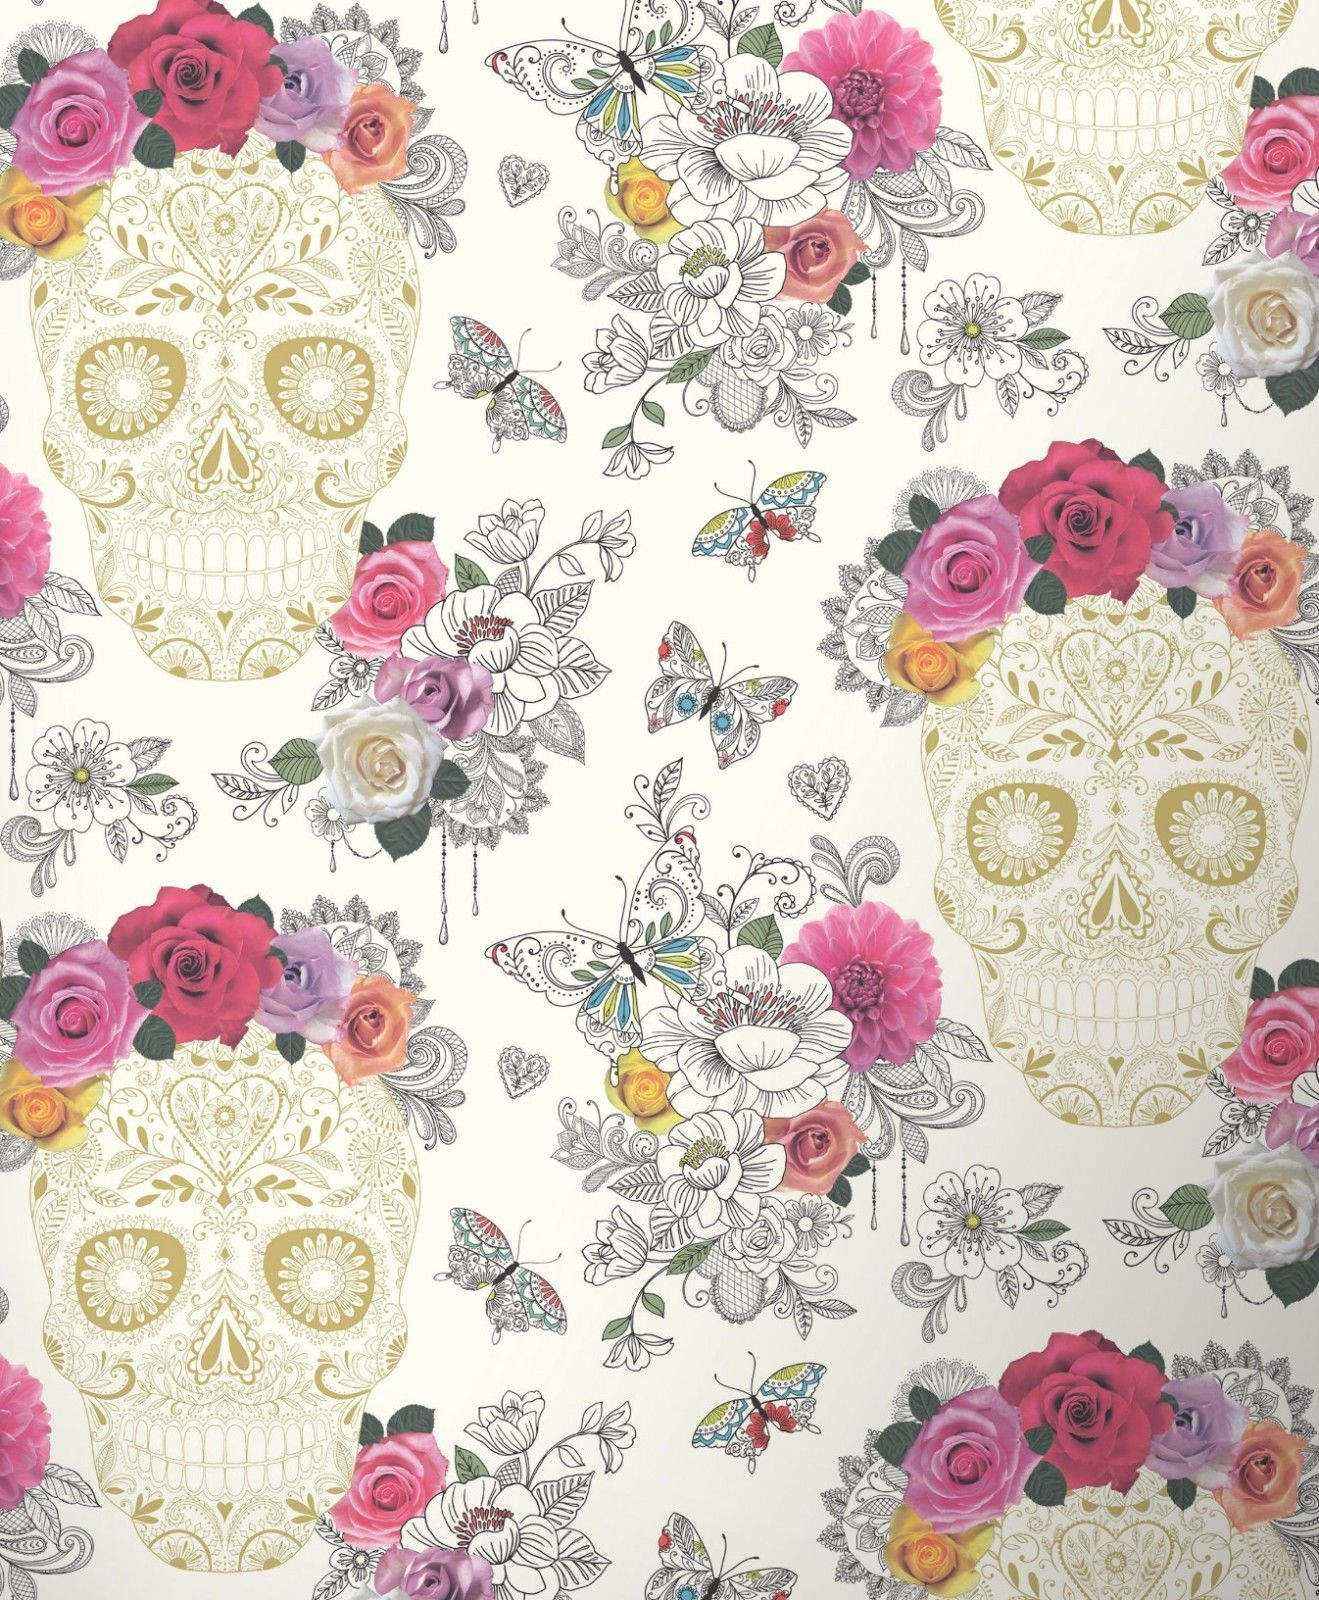 Sugar Skull Floral Wallpaper Pink Gold Cream Butterflies Art